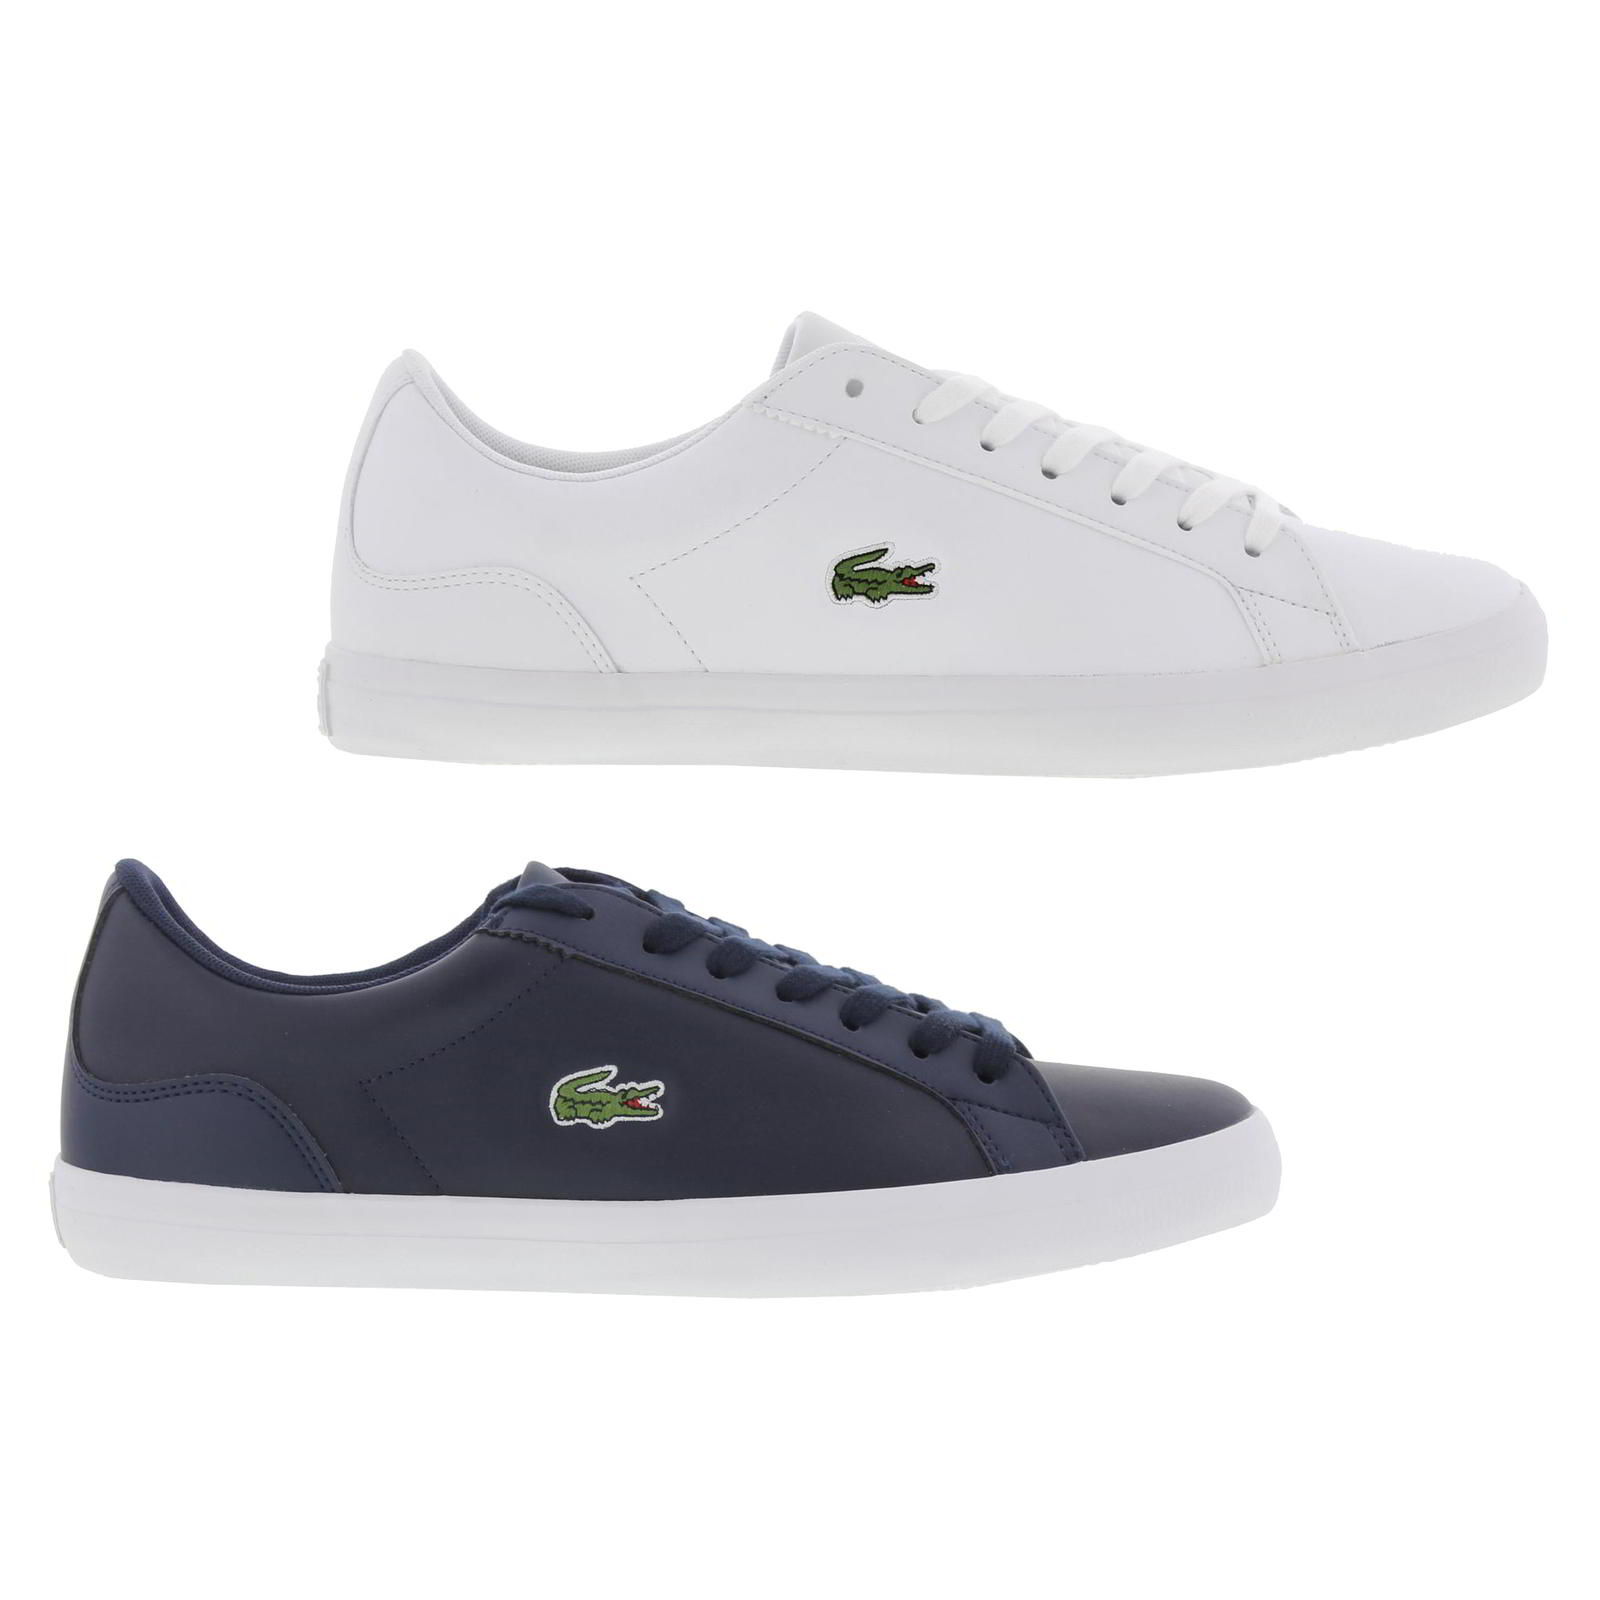 4f064f119ef6a8 Lacoste Lerond BL 1 Mens White Leather Lace Up Trainers Shoes Size ...